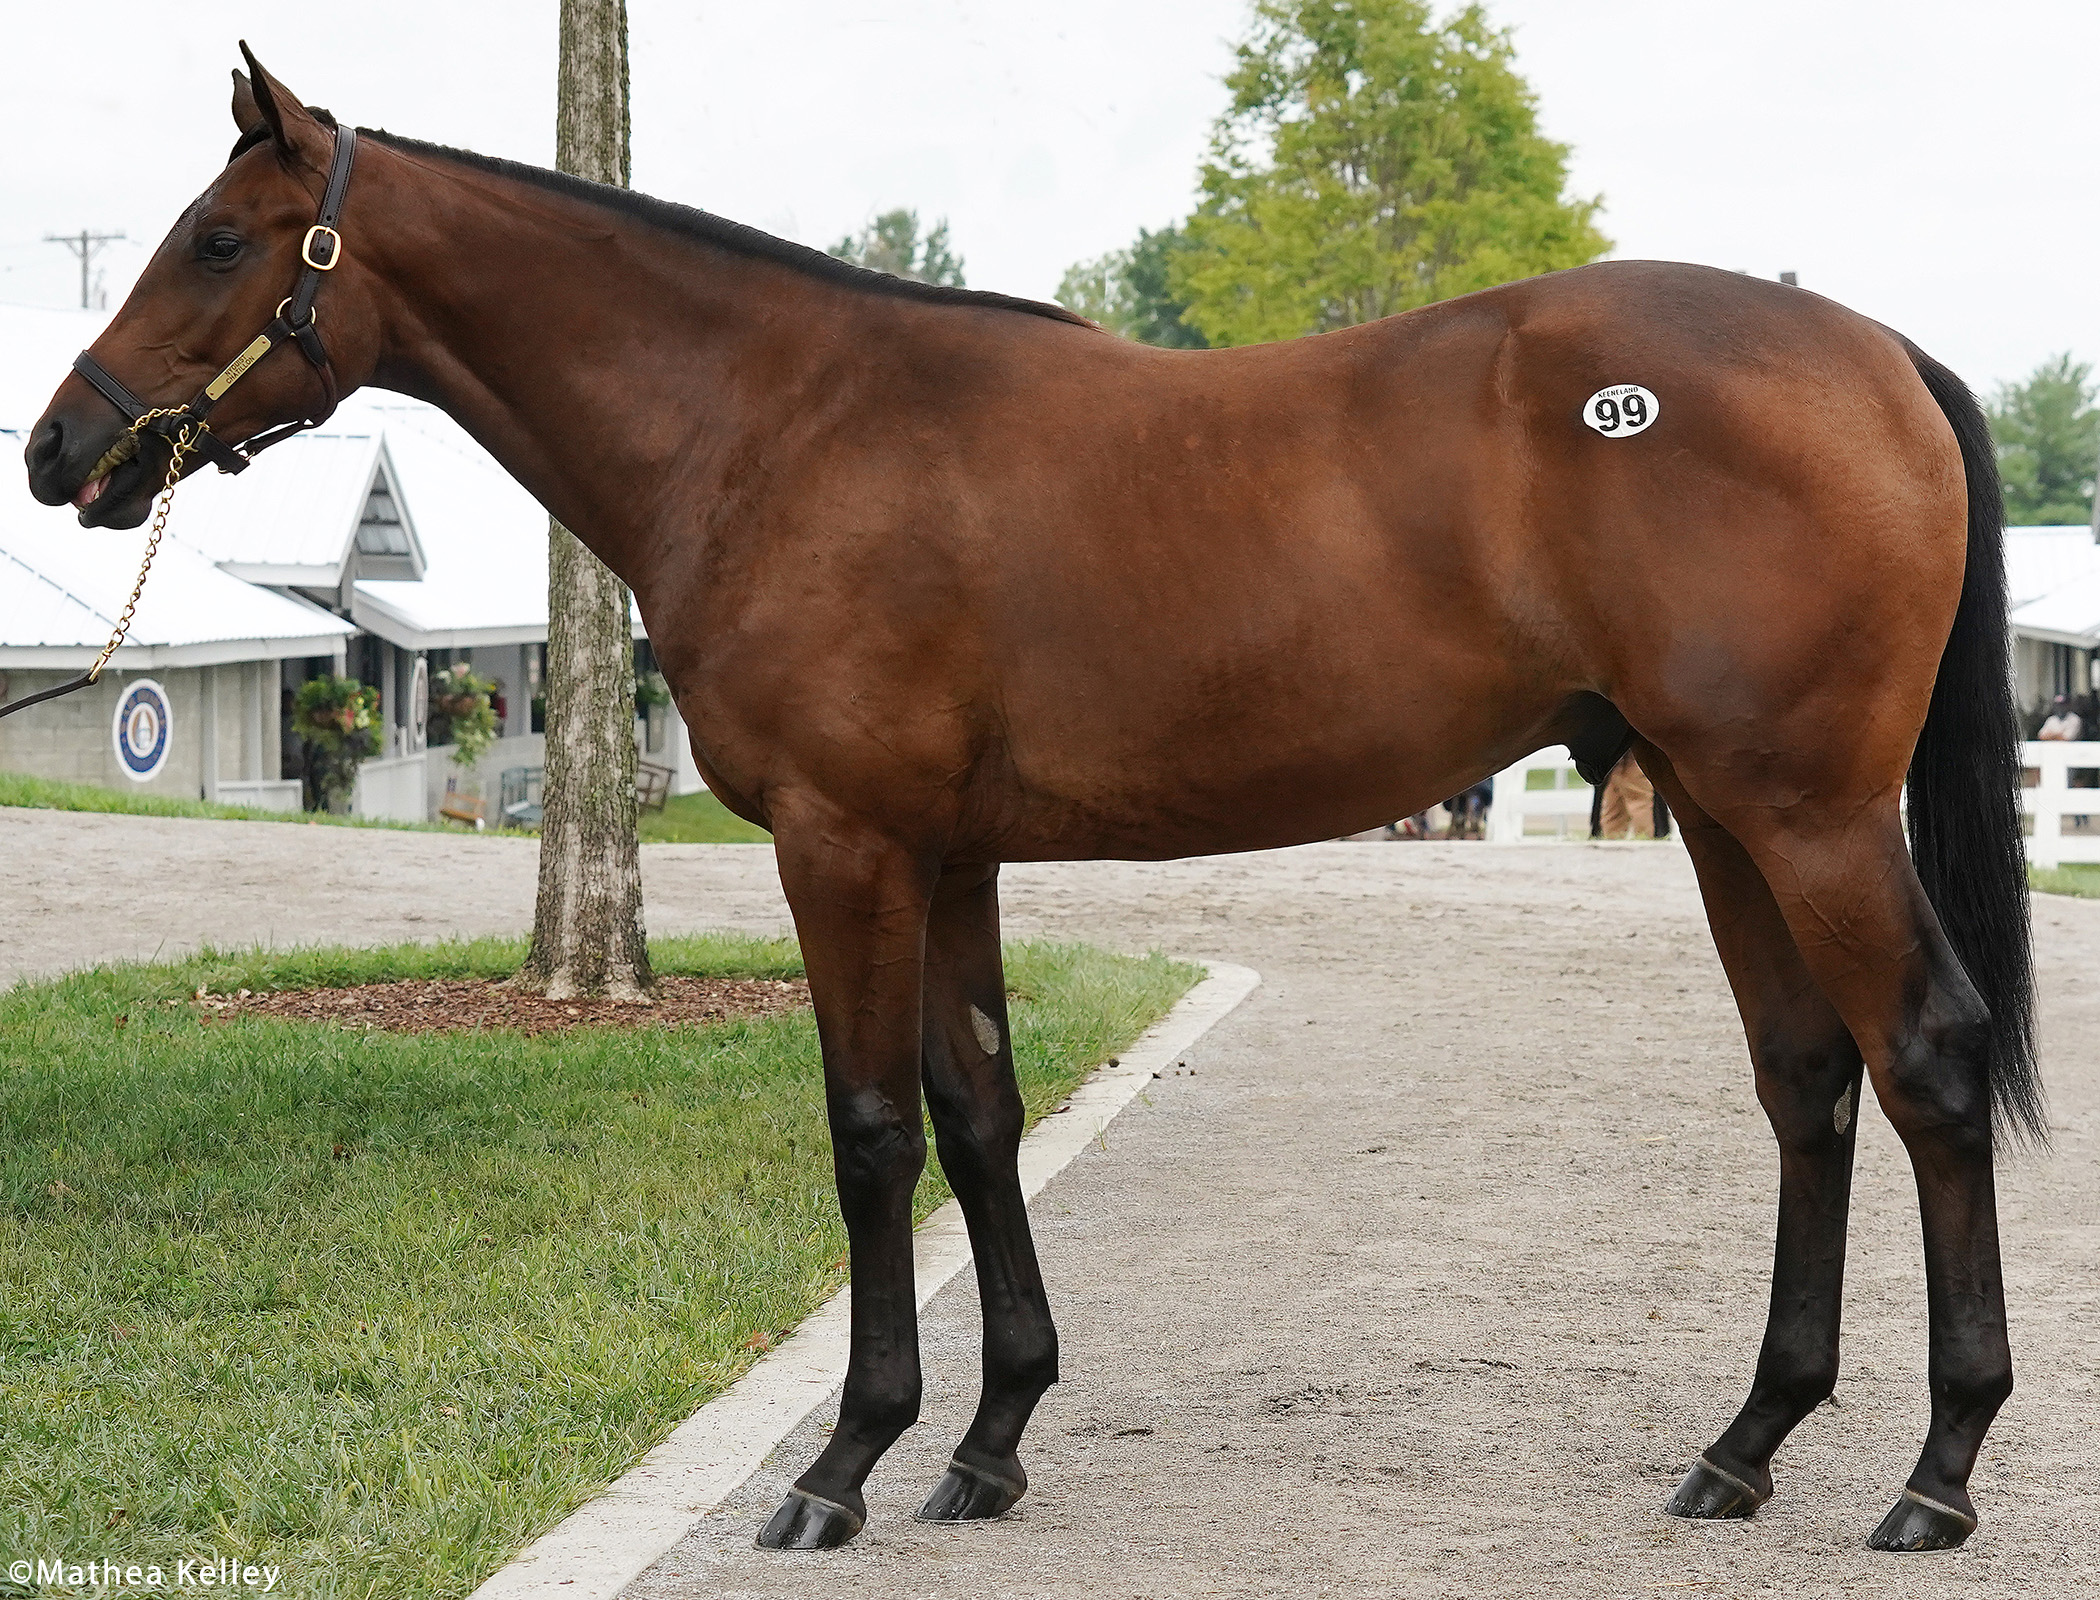 Nyquist colt out of the Ghostzapper mare Chatillon, purchased at Keeneland's September Yearling Sale and available for a thoroughbred racing partnership.